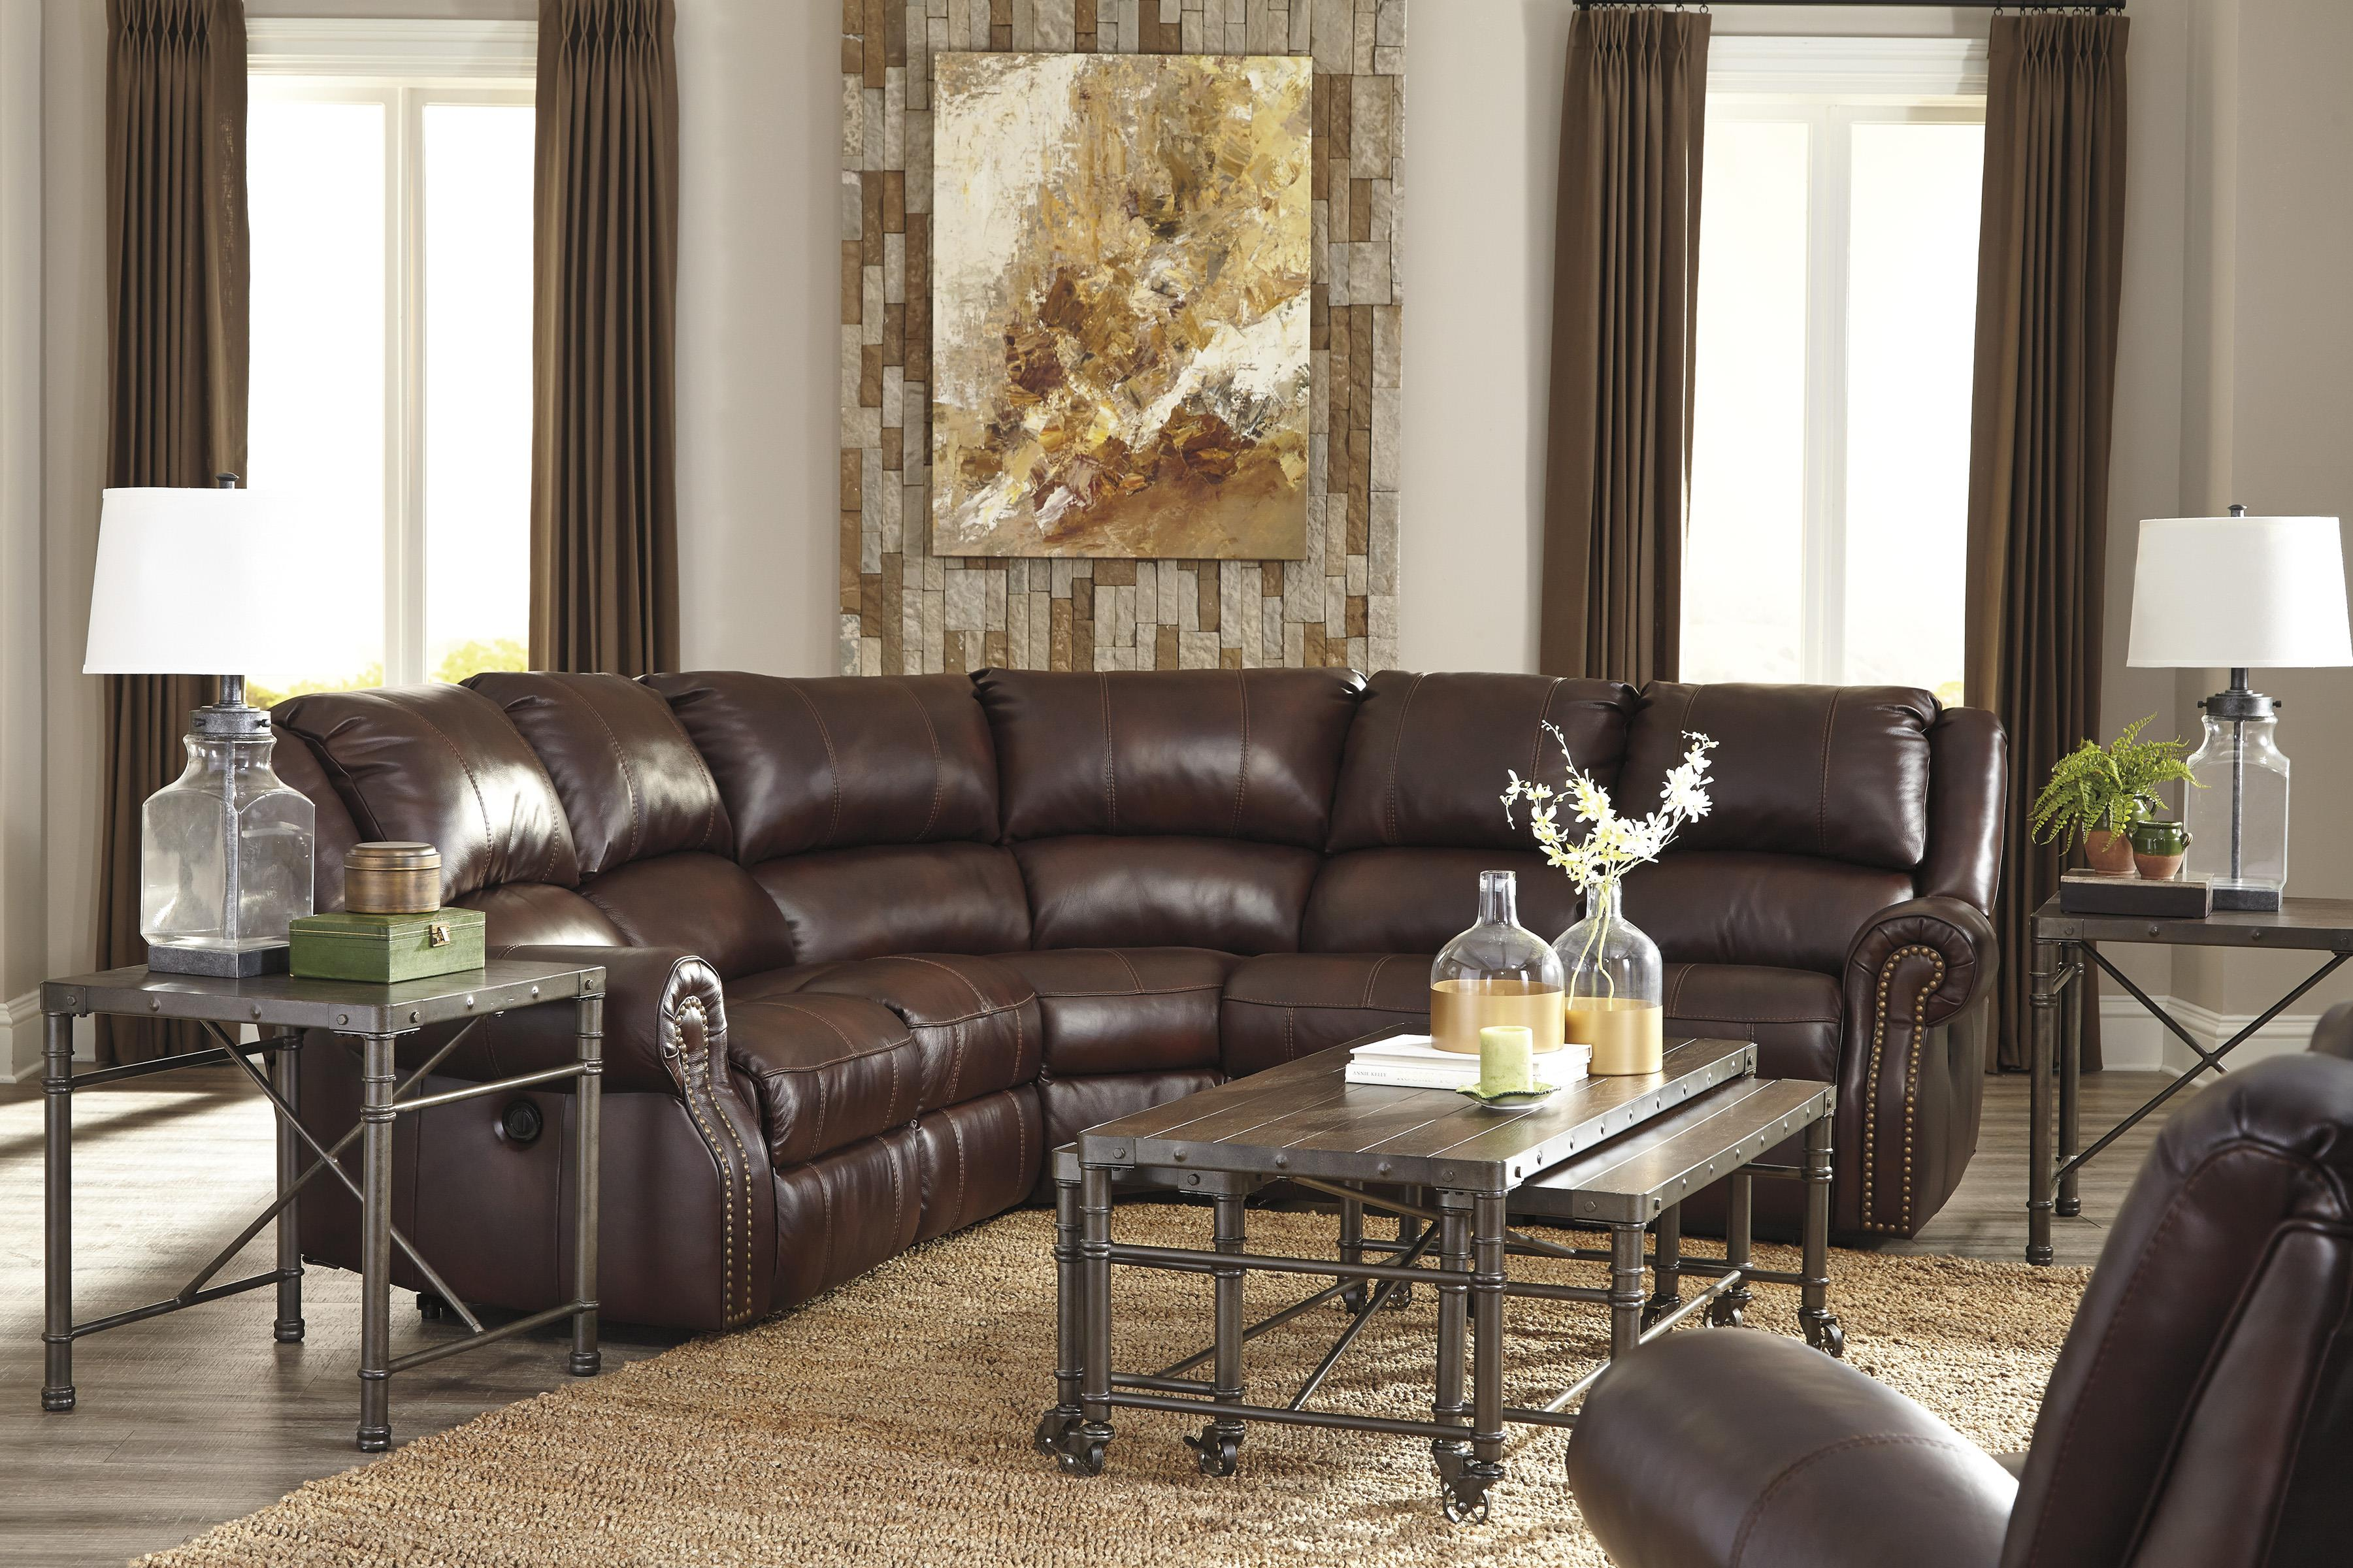 Signature Design by Ashley Collinsville Reclining Living Room Group - Item Number: U72100 Living Room Group 2